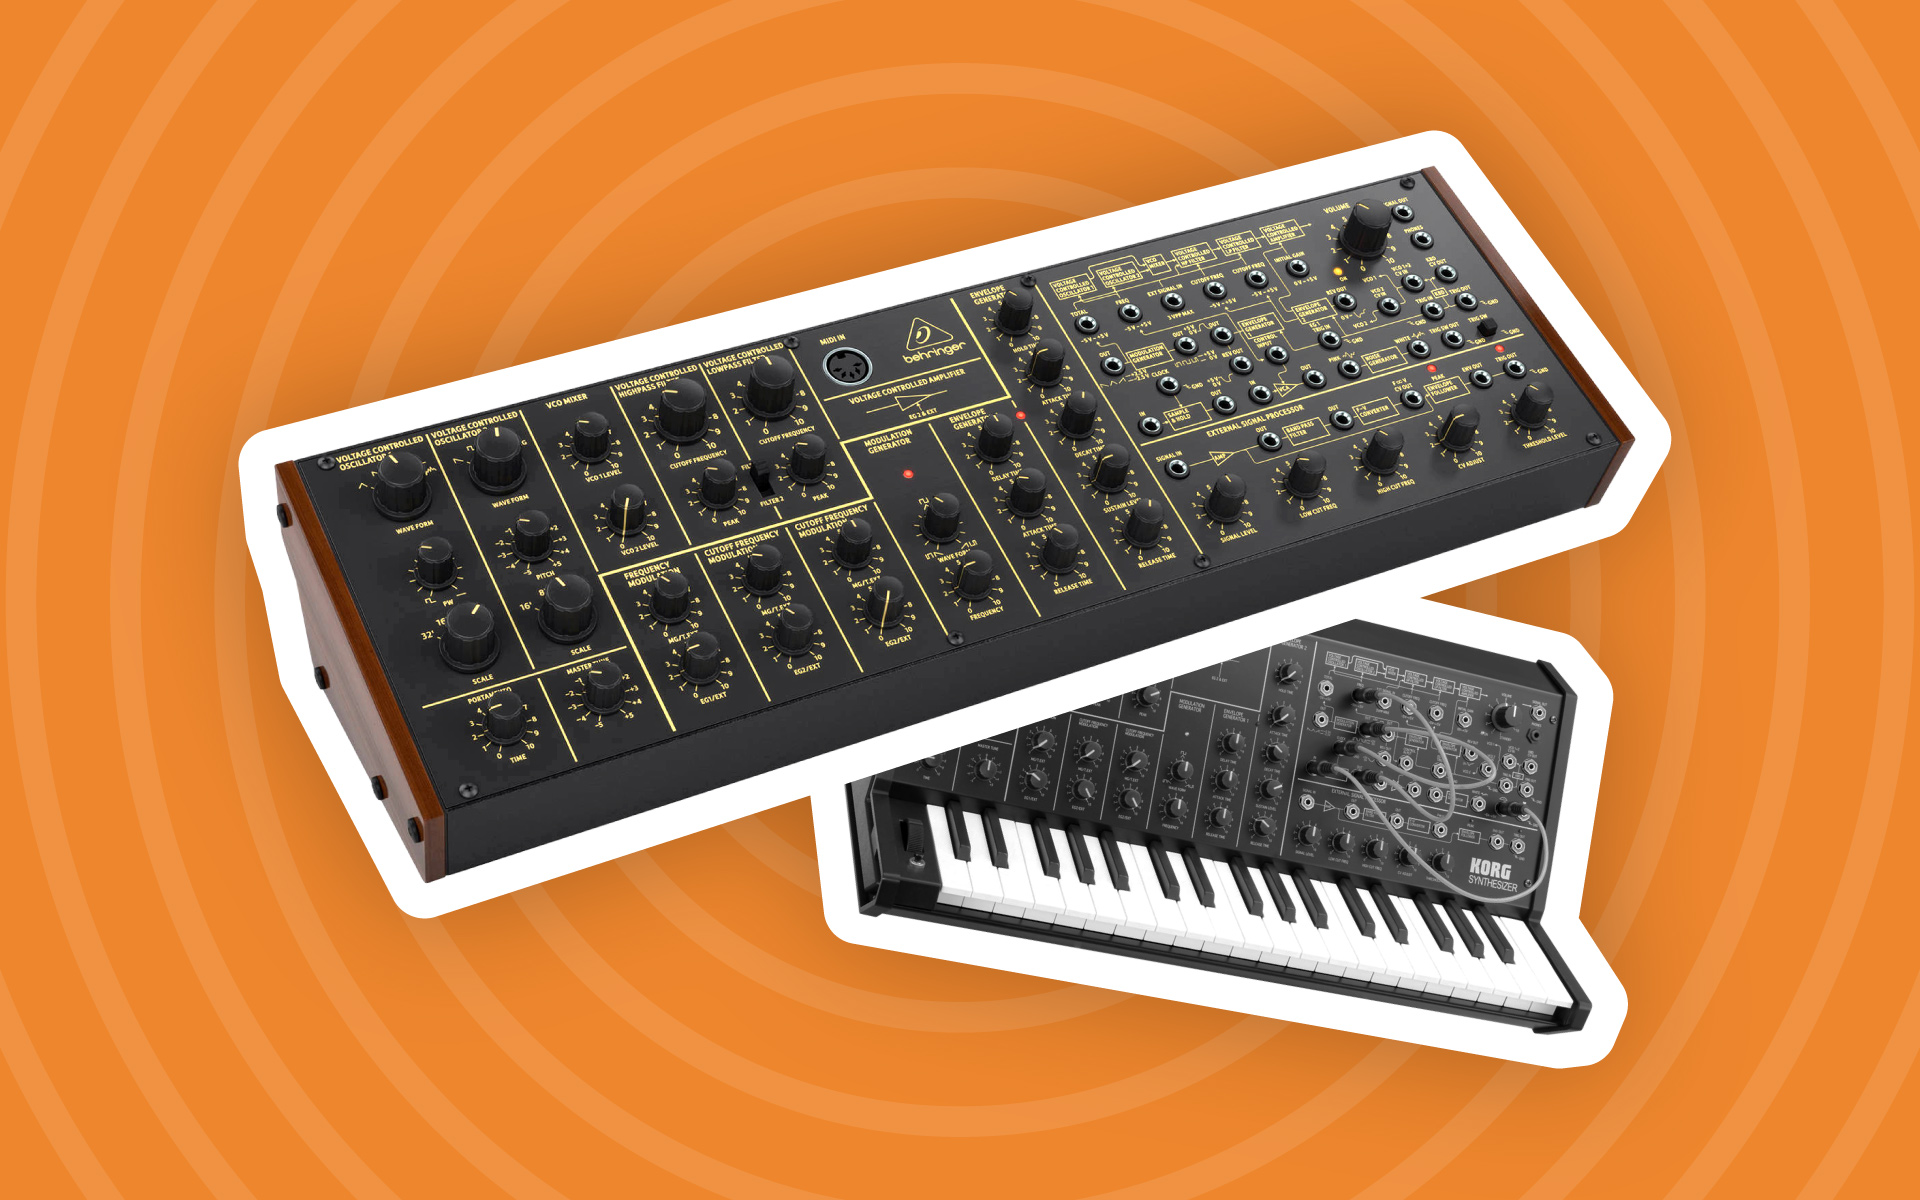 A Behringer K-2 Synth next to the Korg MS-20.